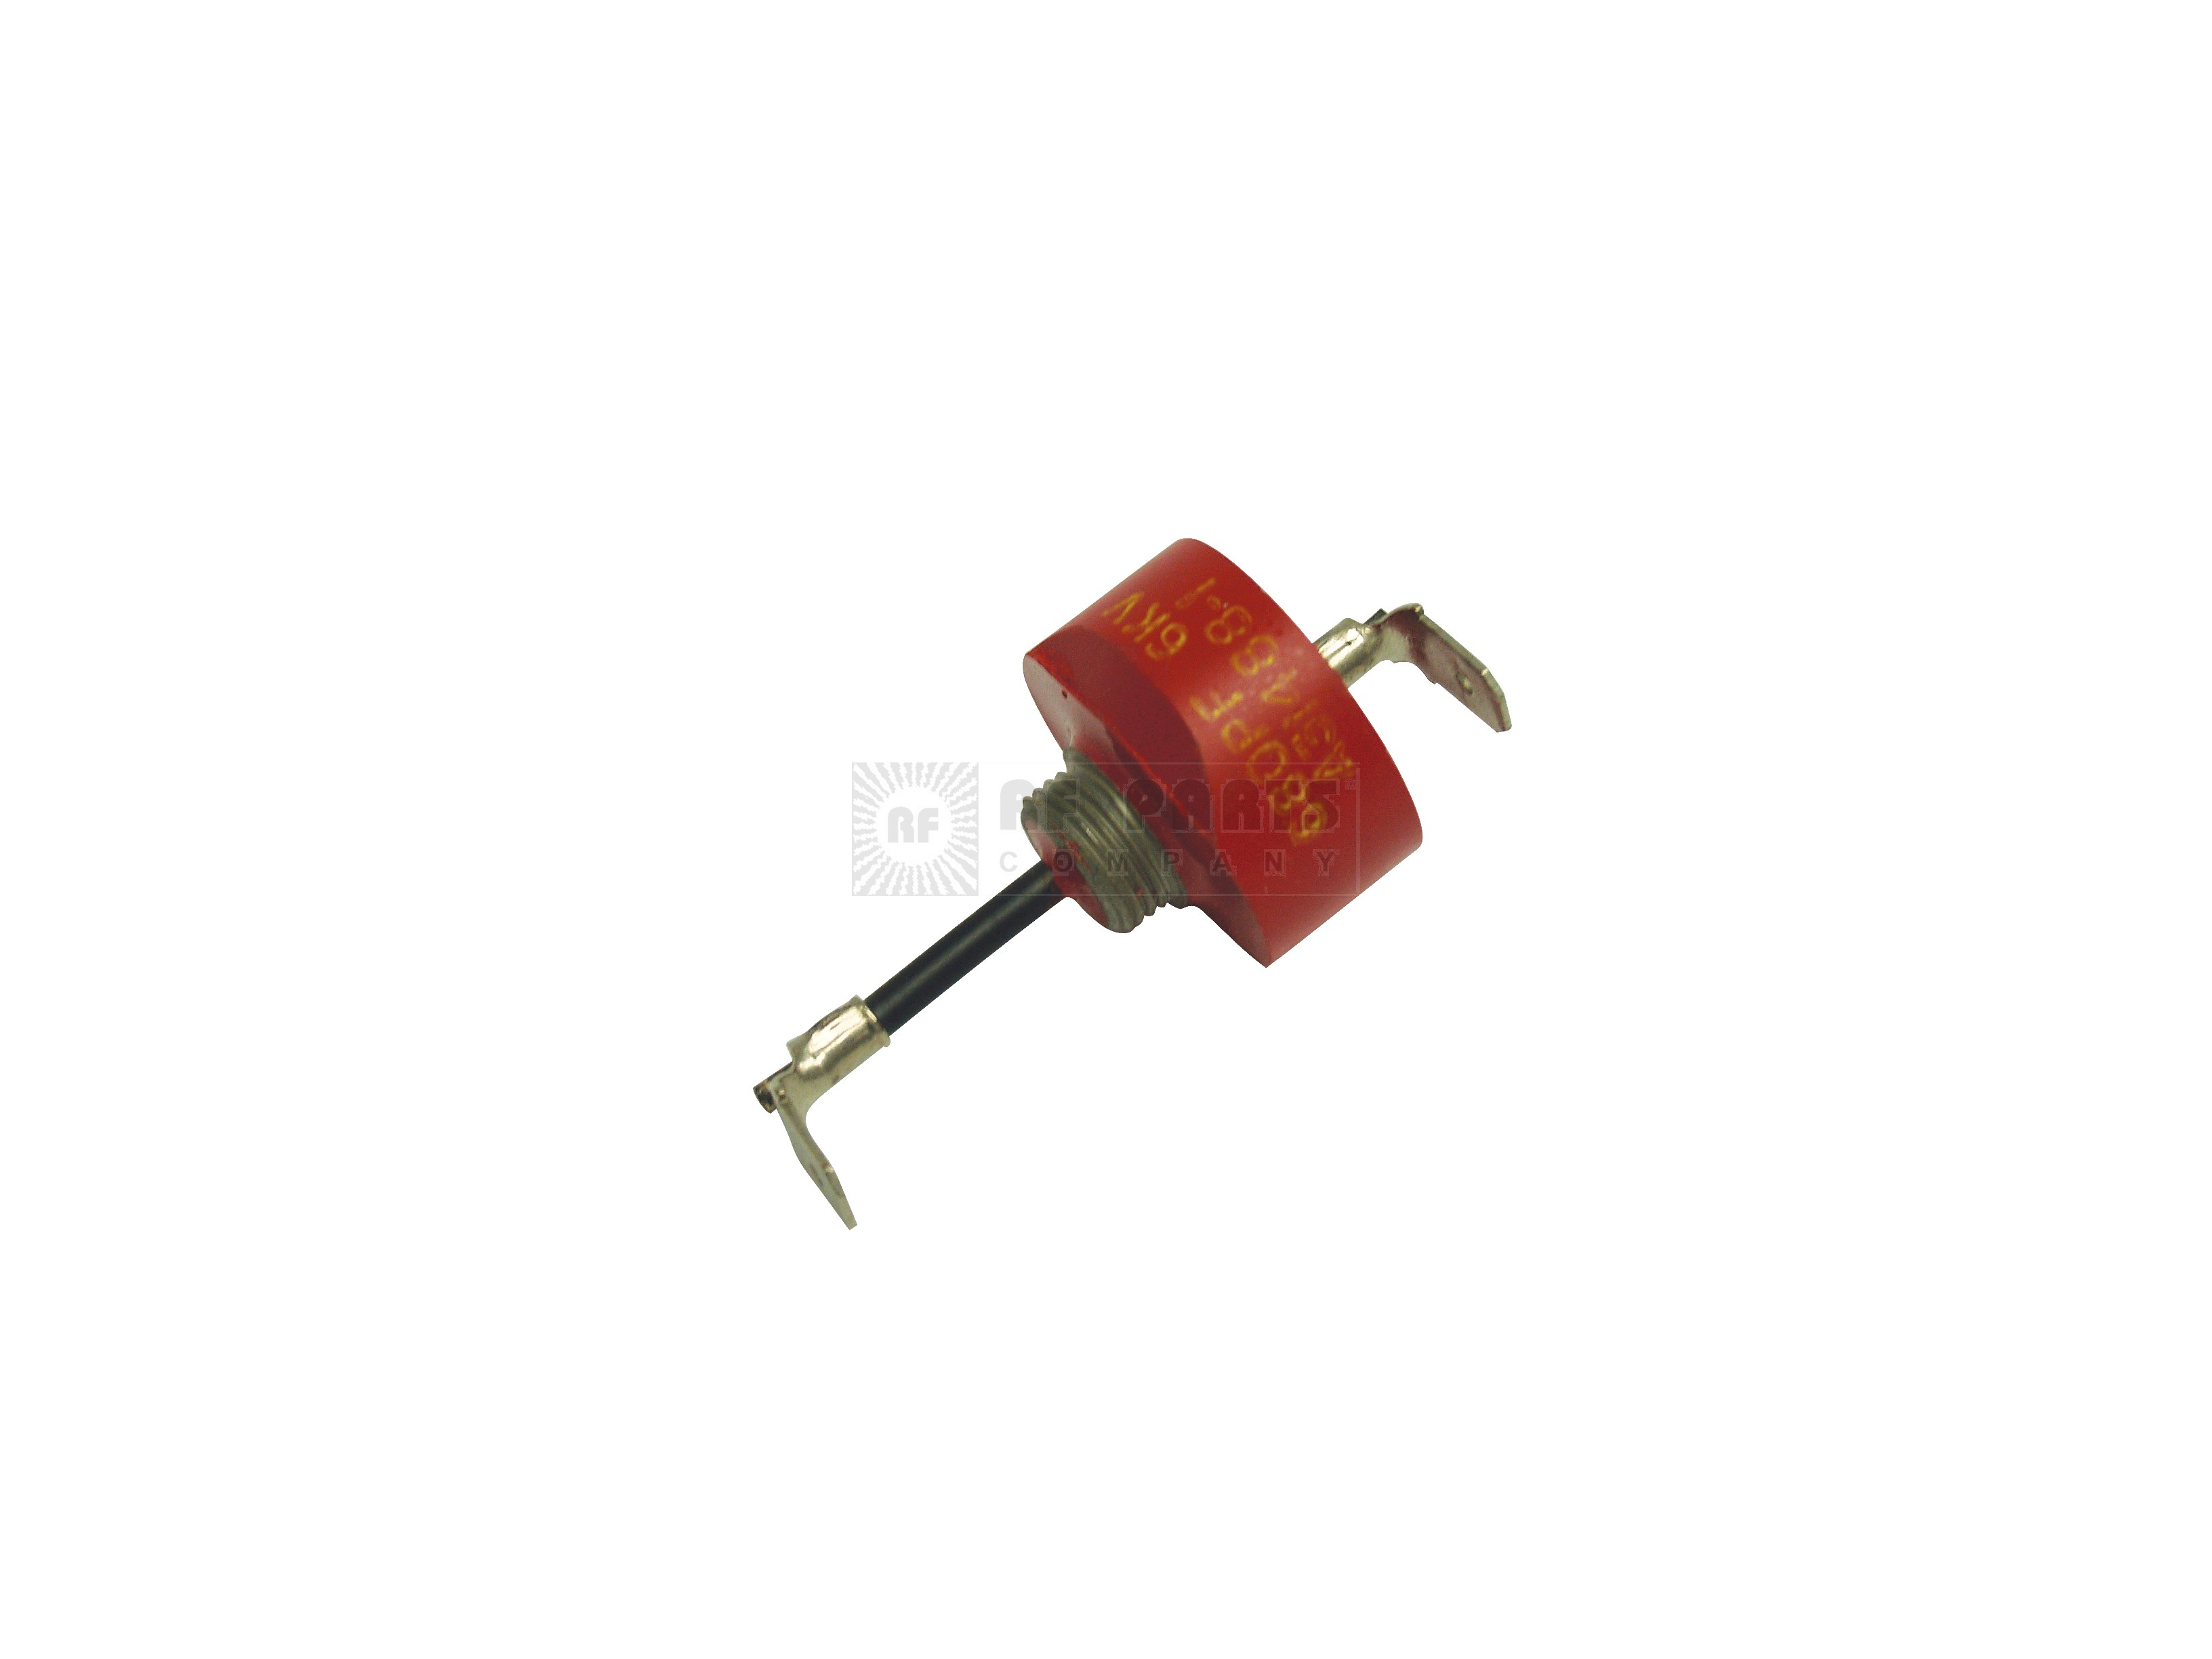 680PF-6KV Capacitor, Feedthru, 680pf, 6kv, Sprague